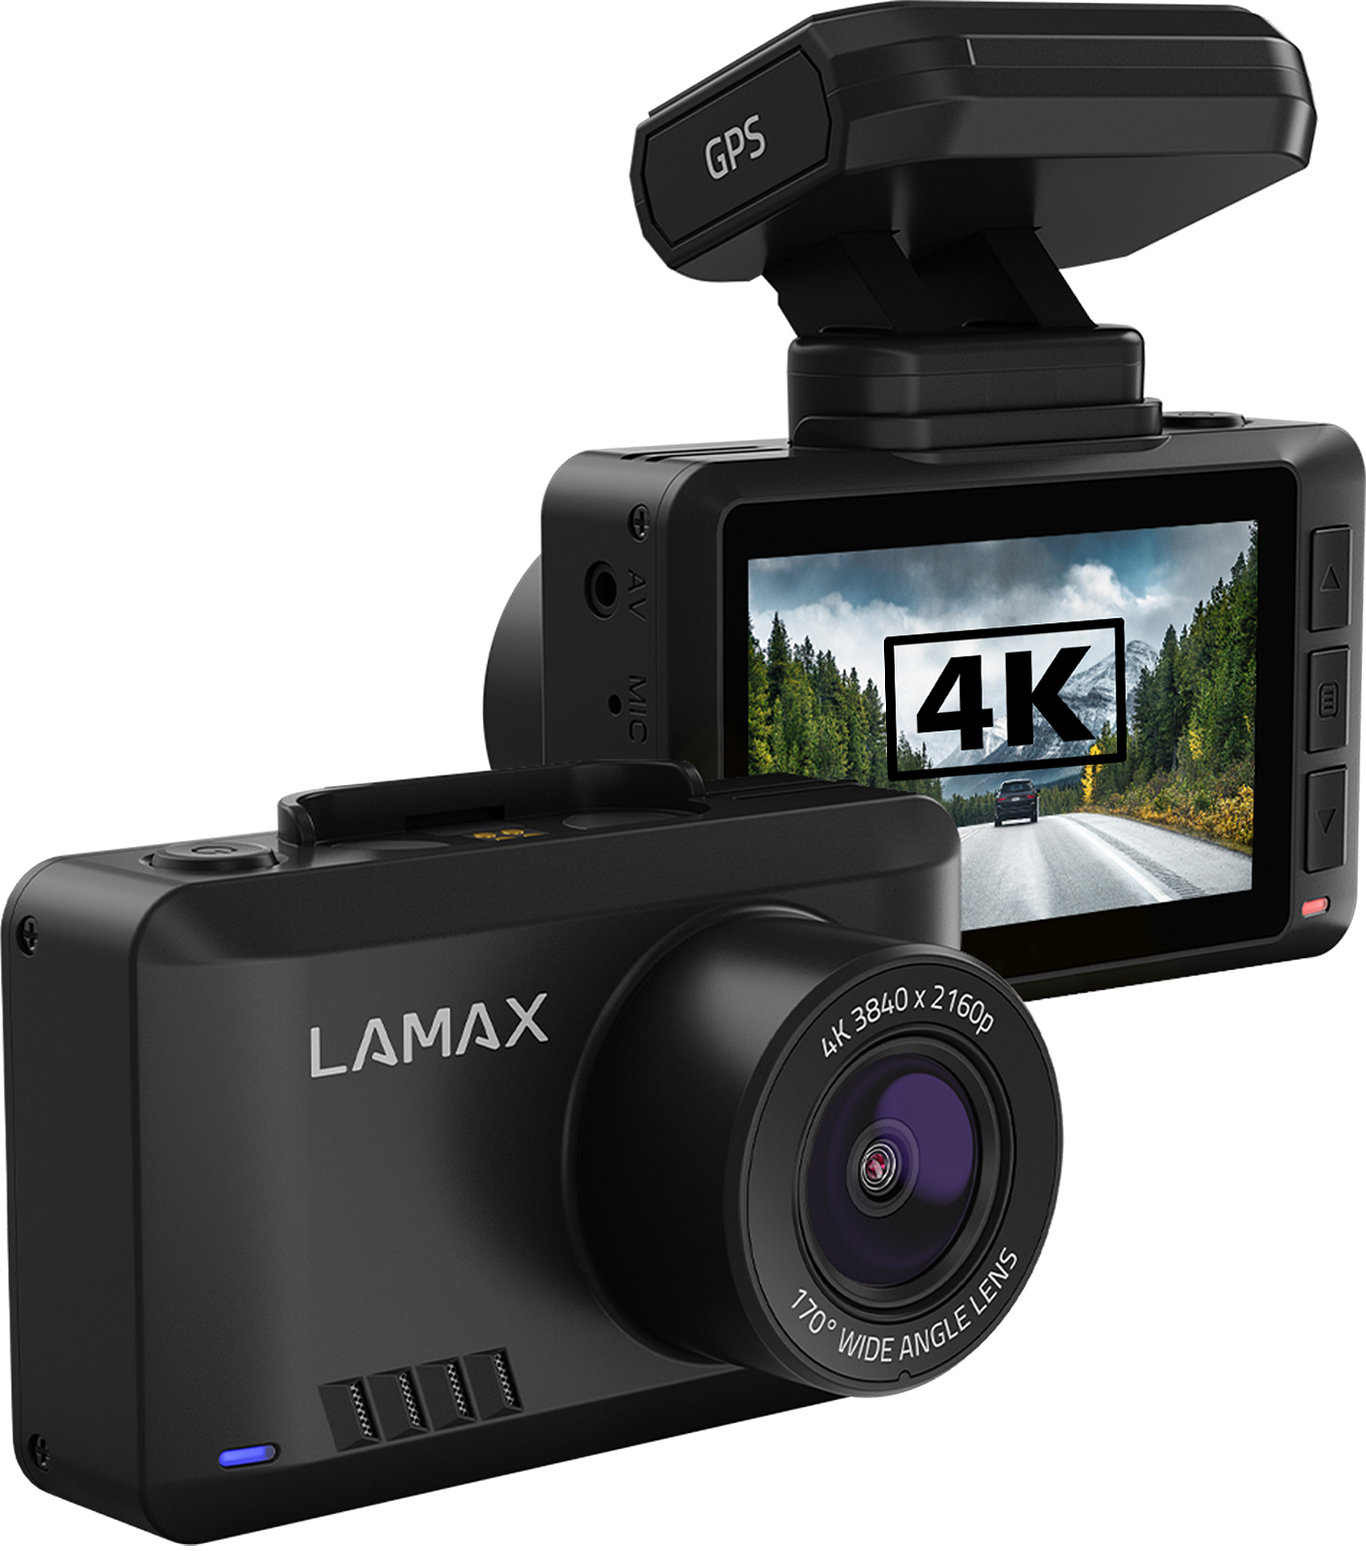 LAMAX T10 - 4K protection against disputes and speed cameras